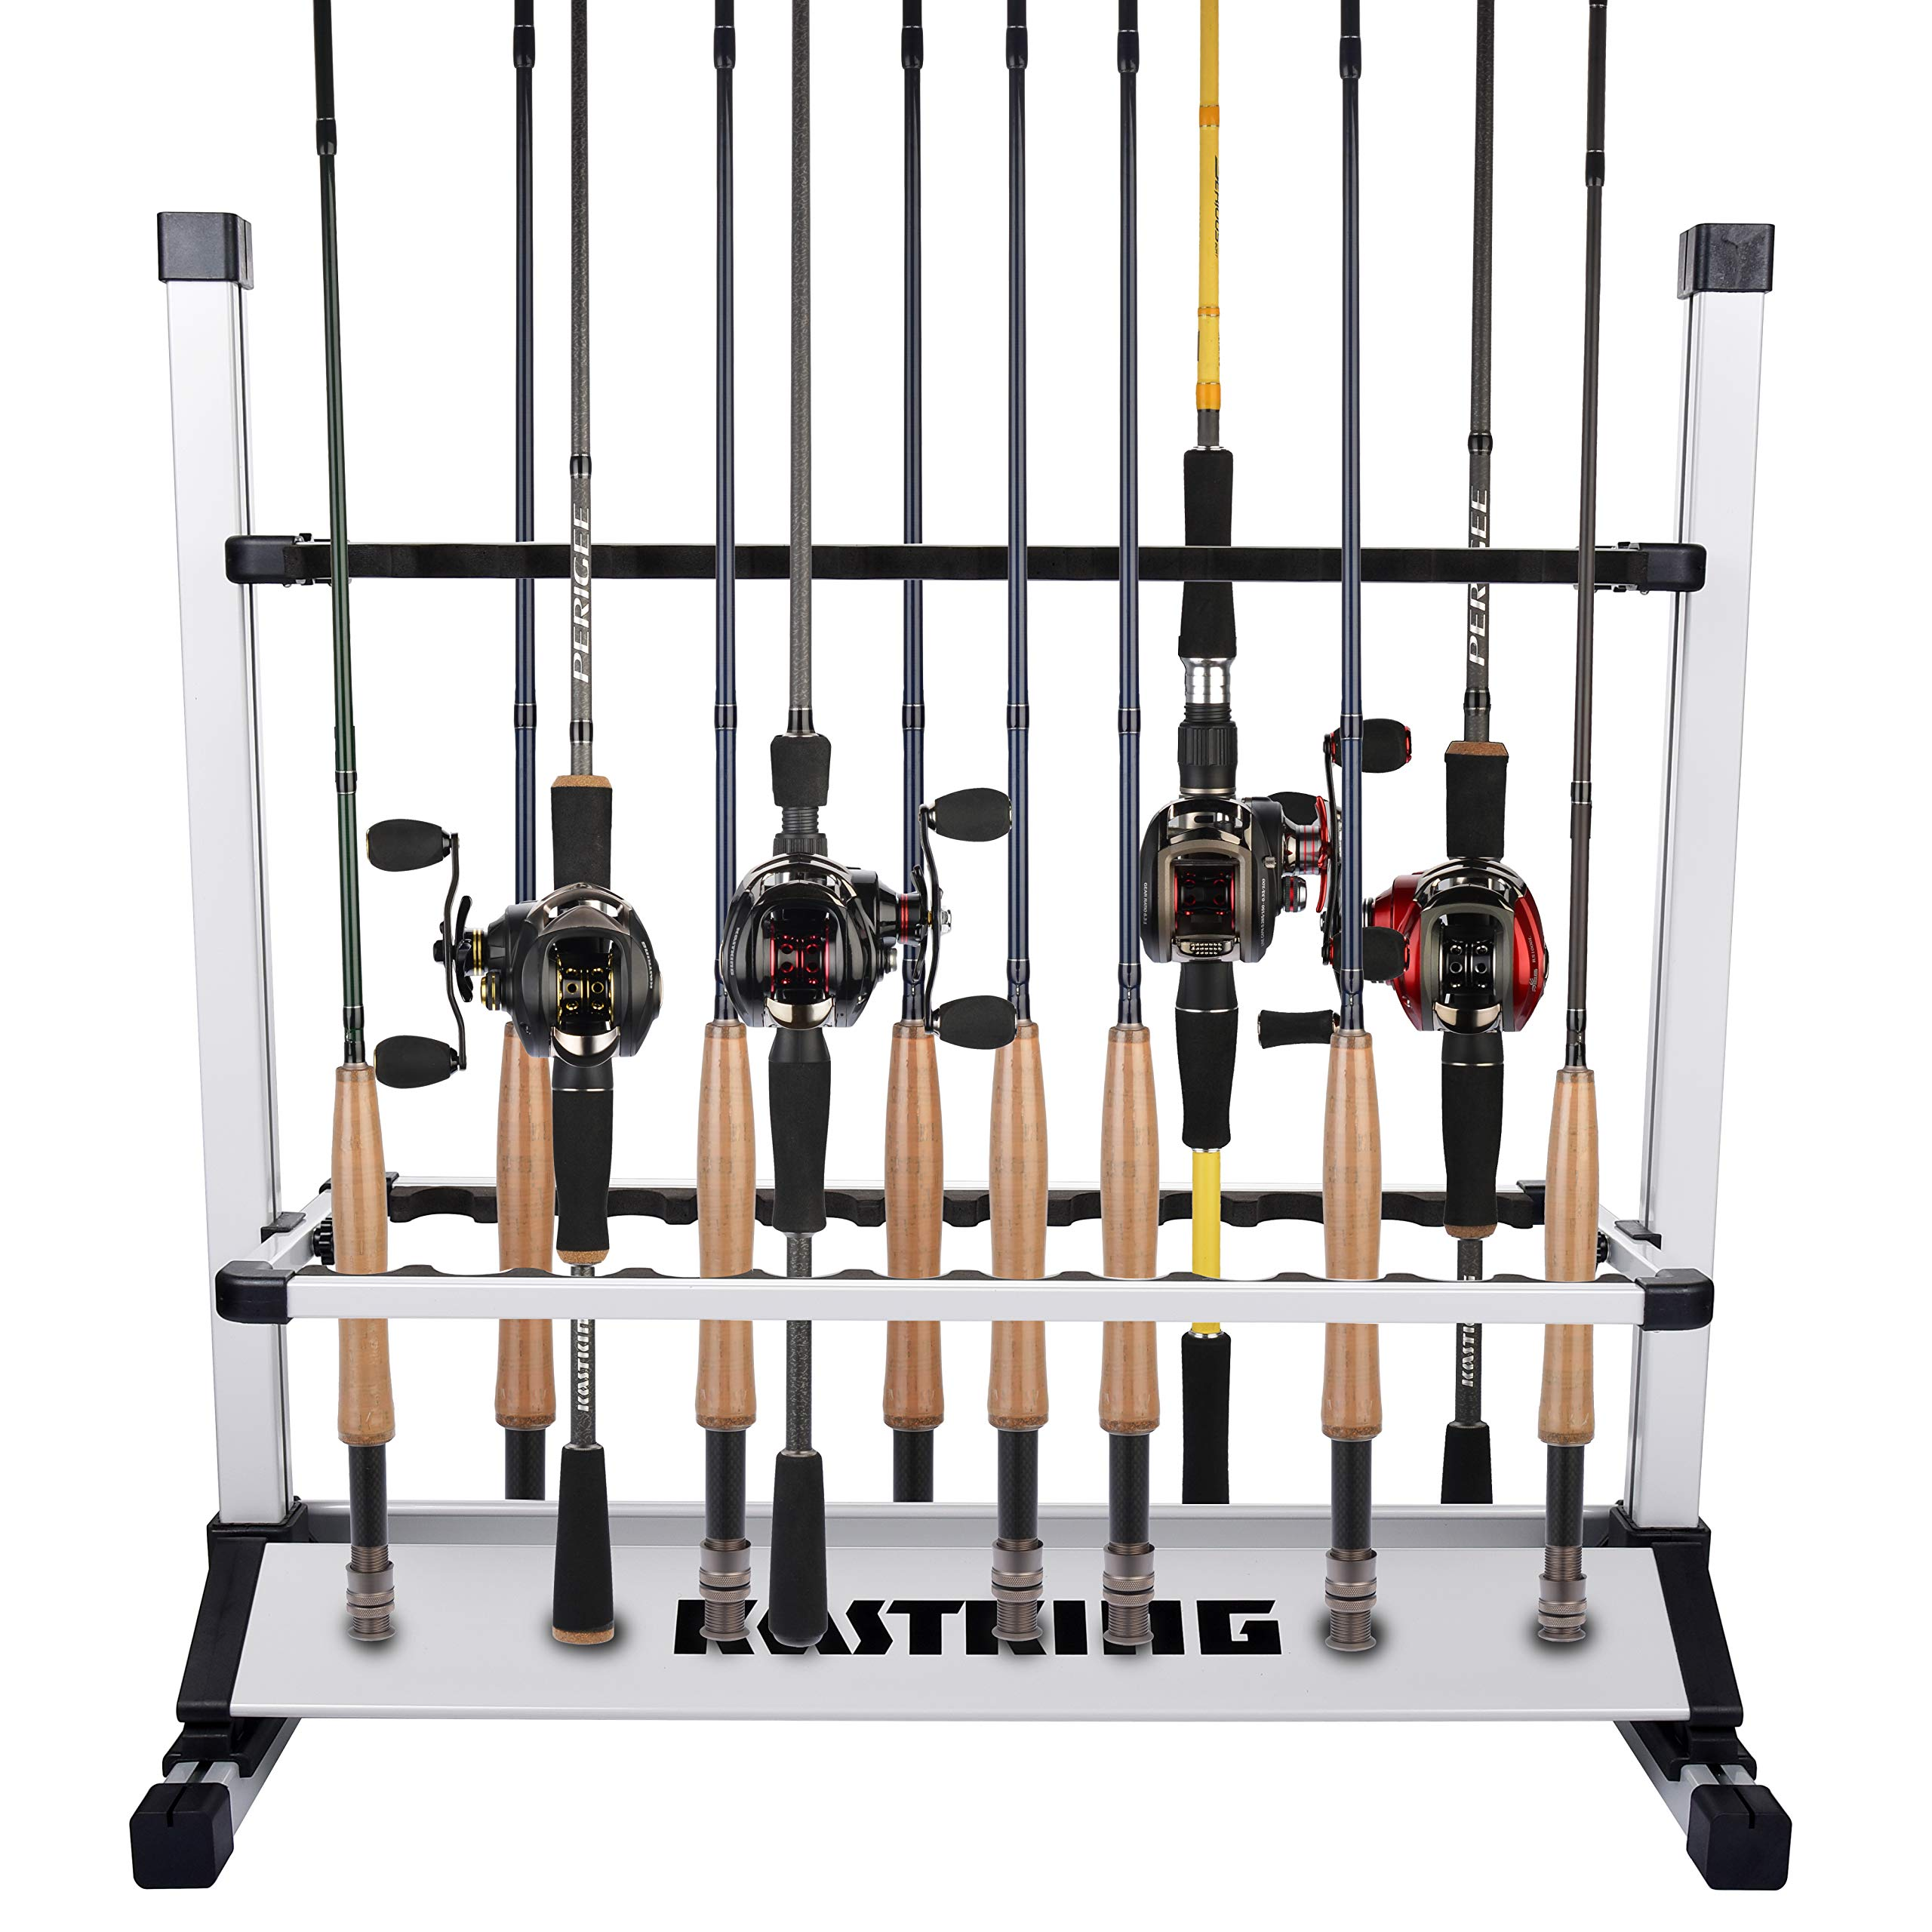 KastKing Fishing Rod Holder, 24 Rods Rack Silver Black by KastKing (Image #2)